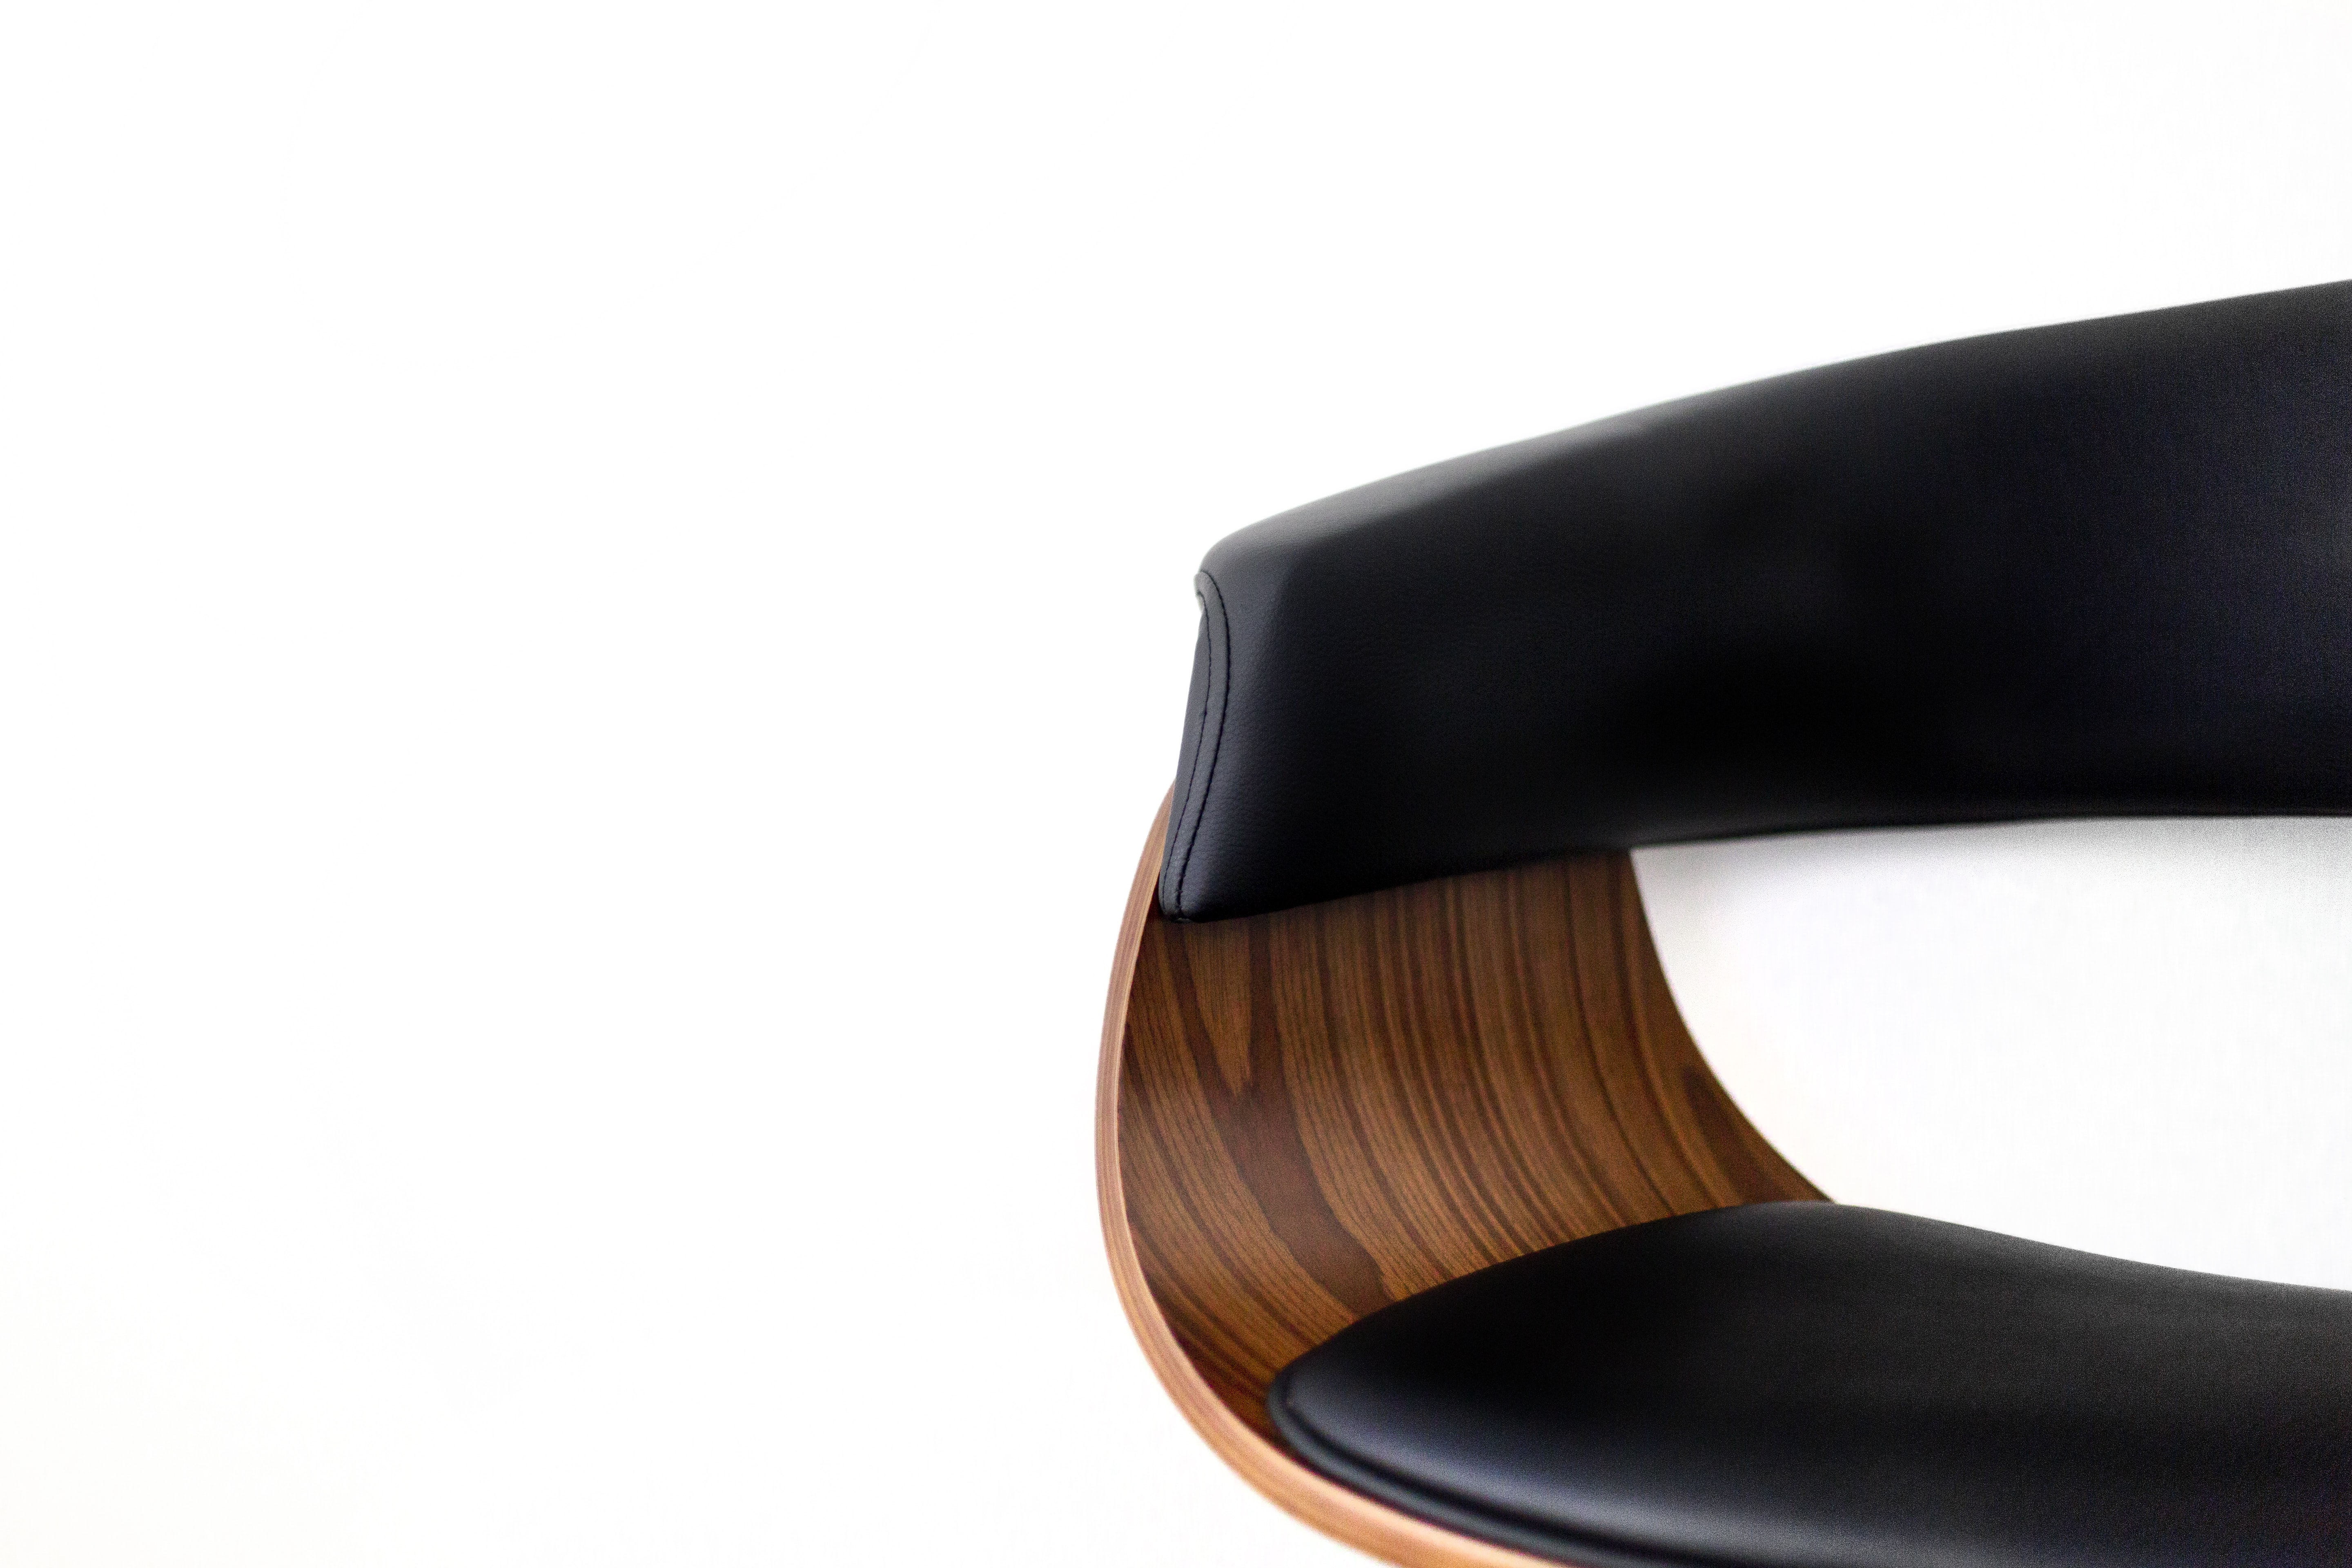 brown and black chair against white background